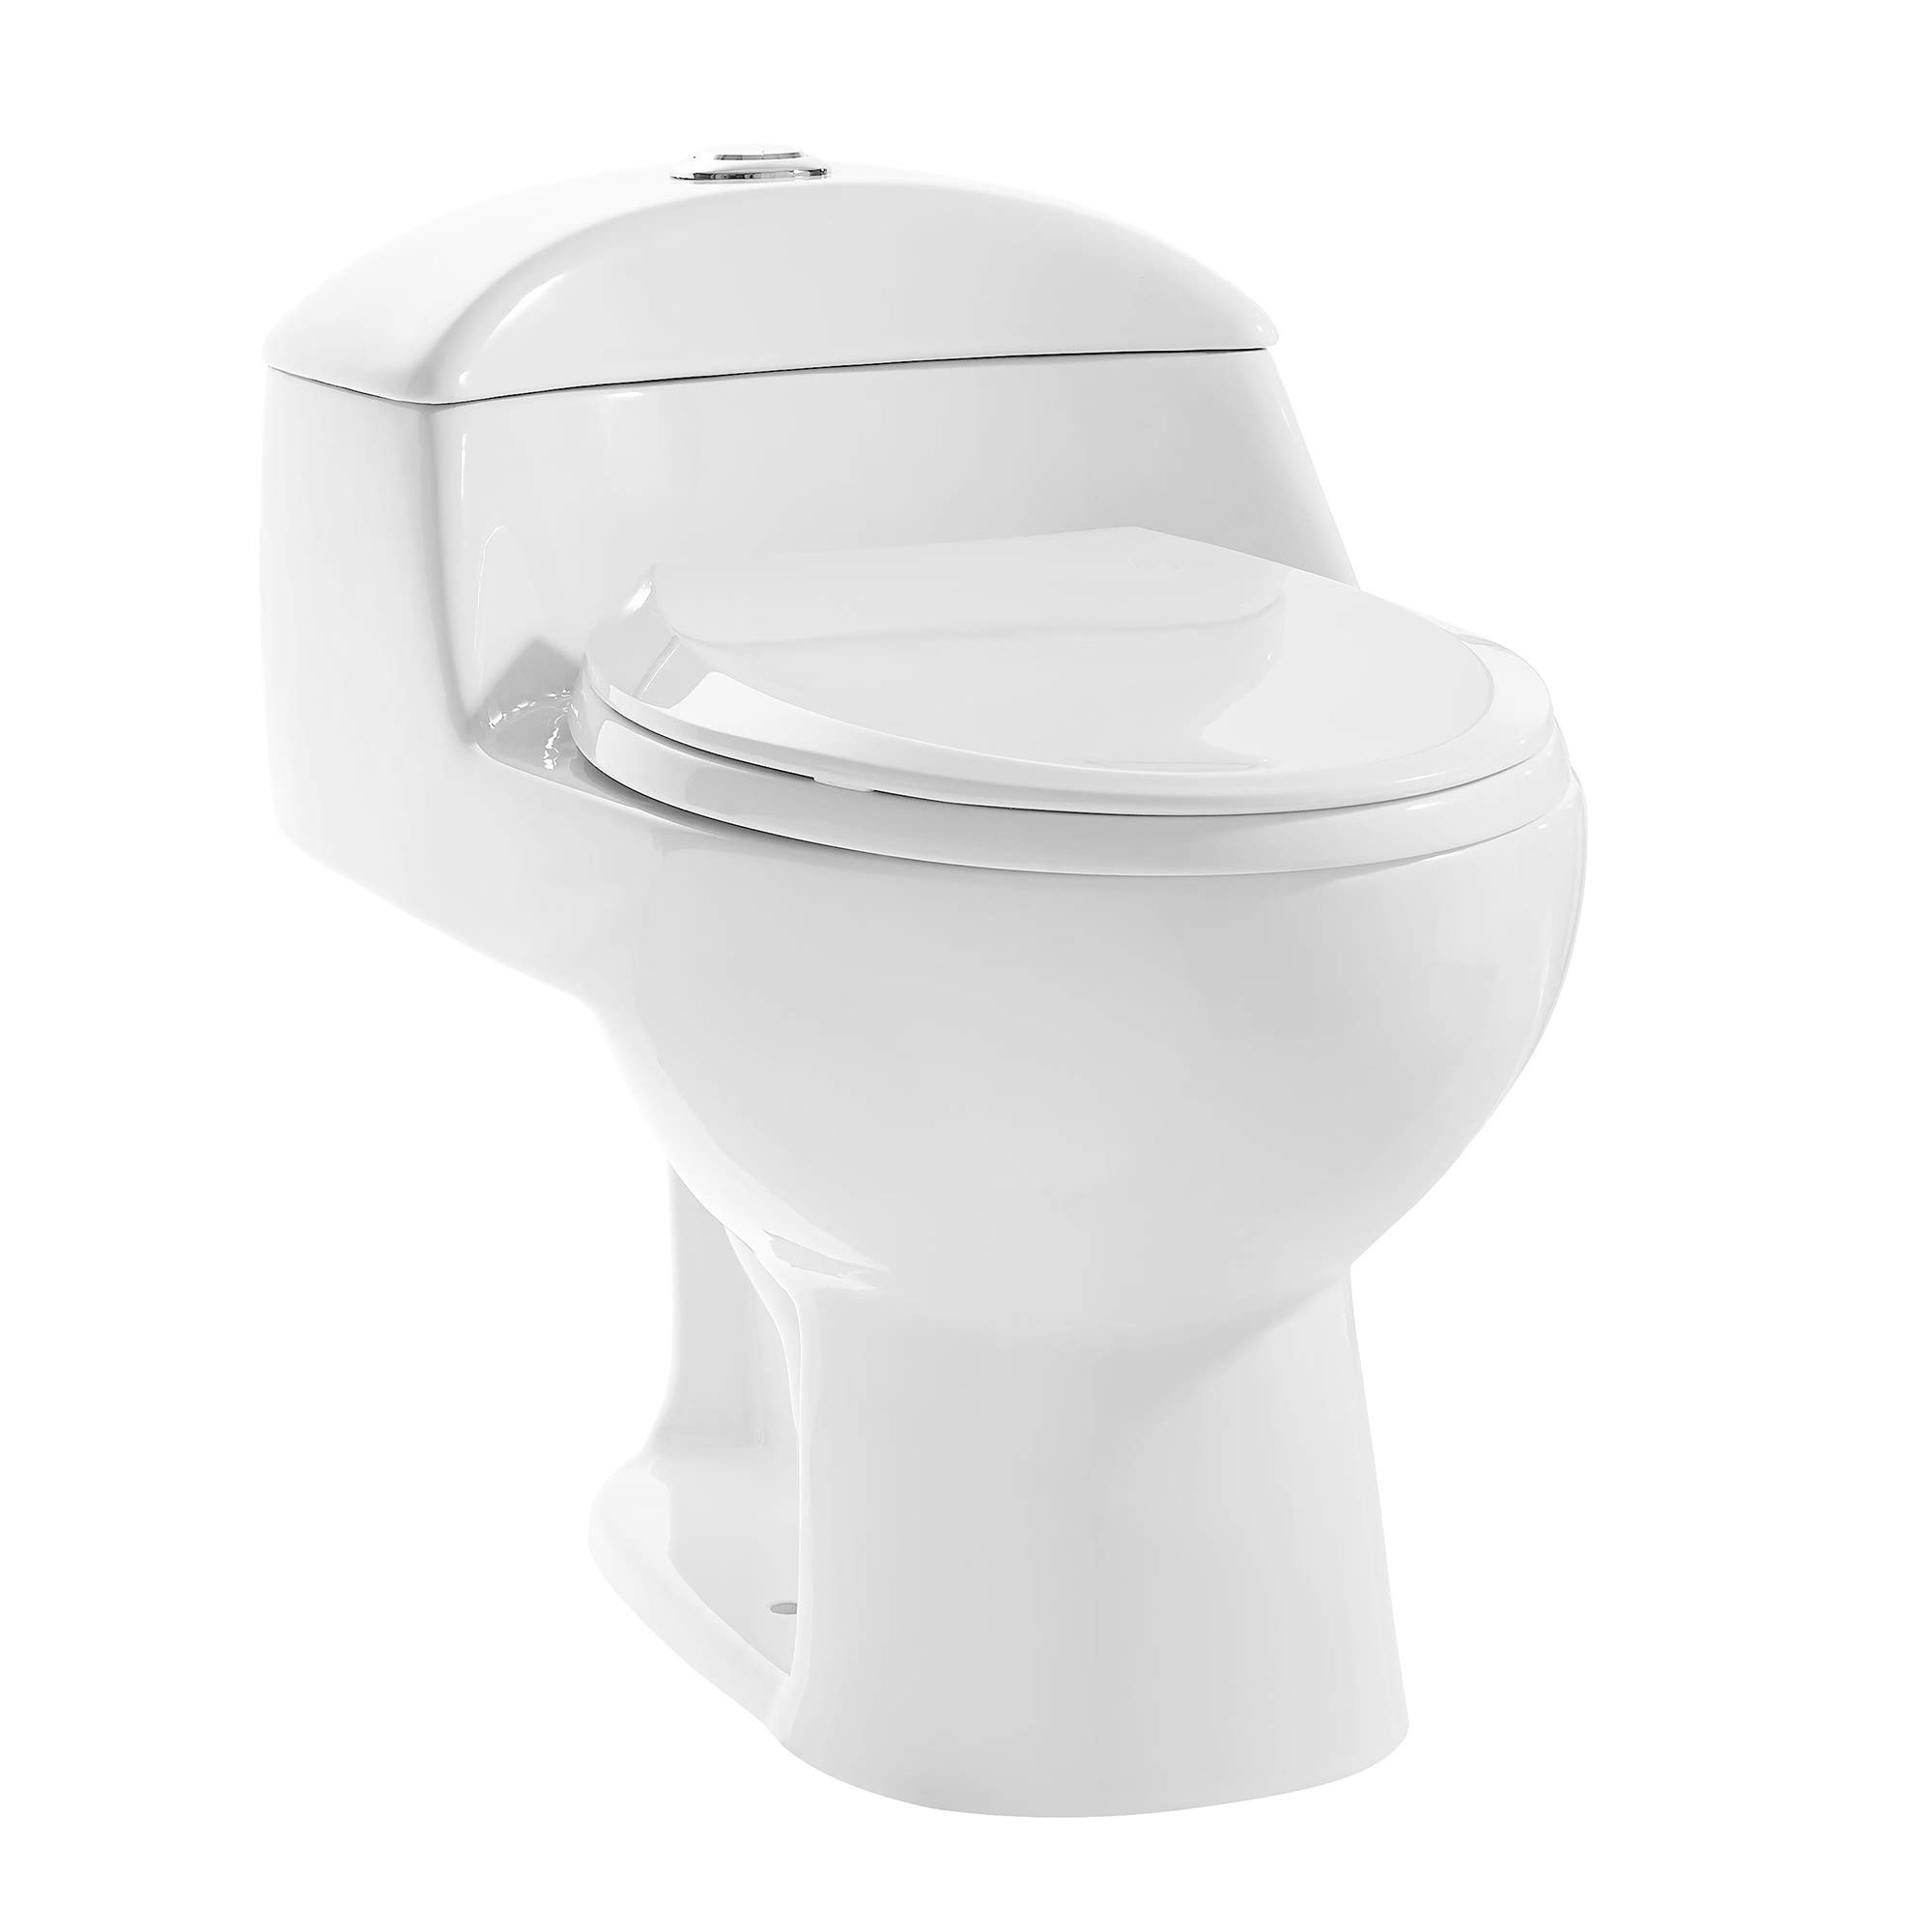 Swiss Madison SM-1T803 Chateau One Piece Toilet, Glossy White by Swiss Madison